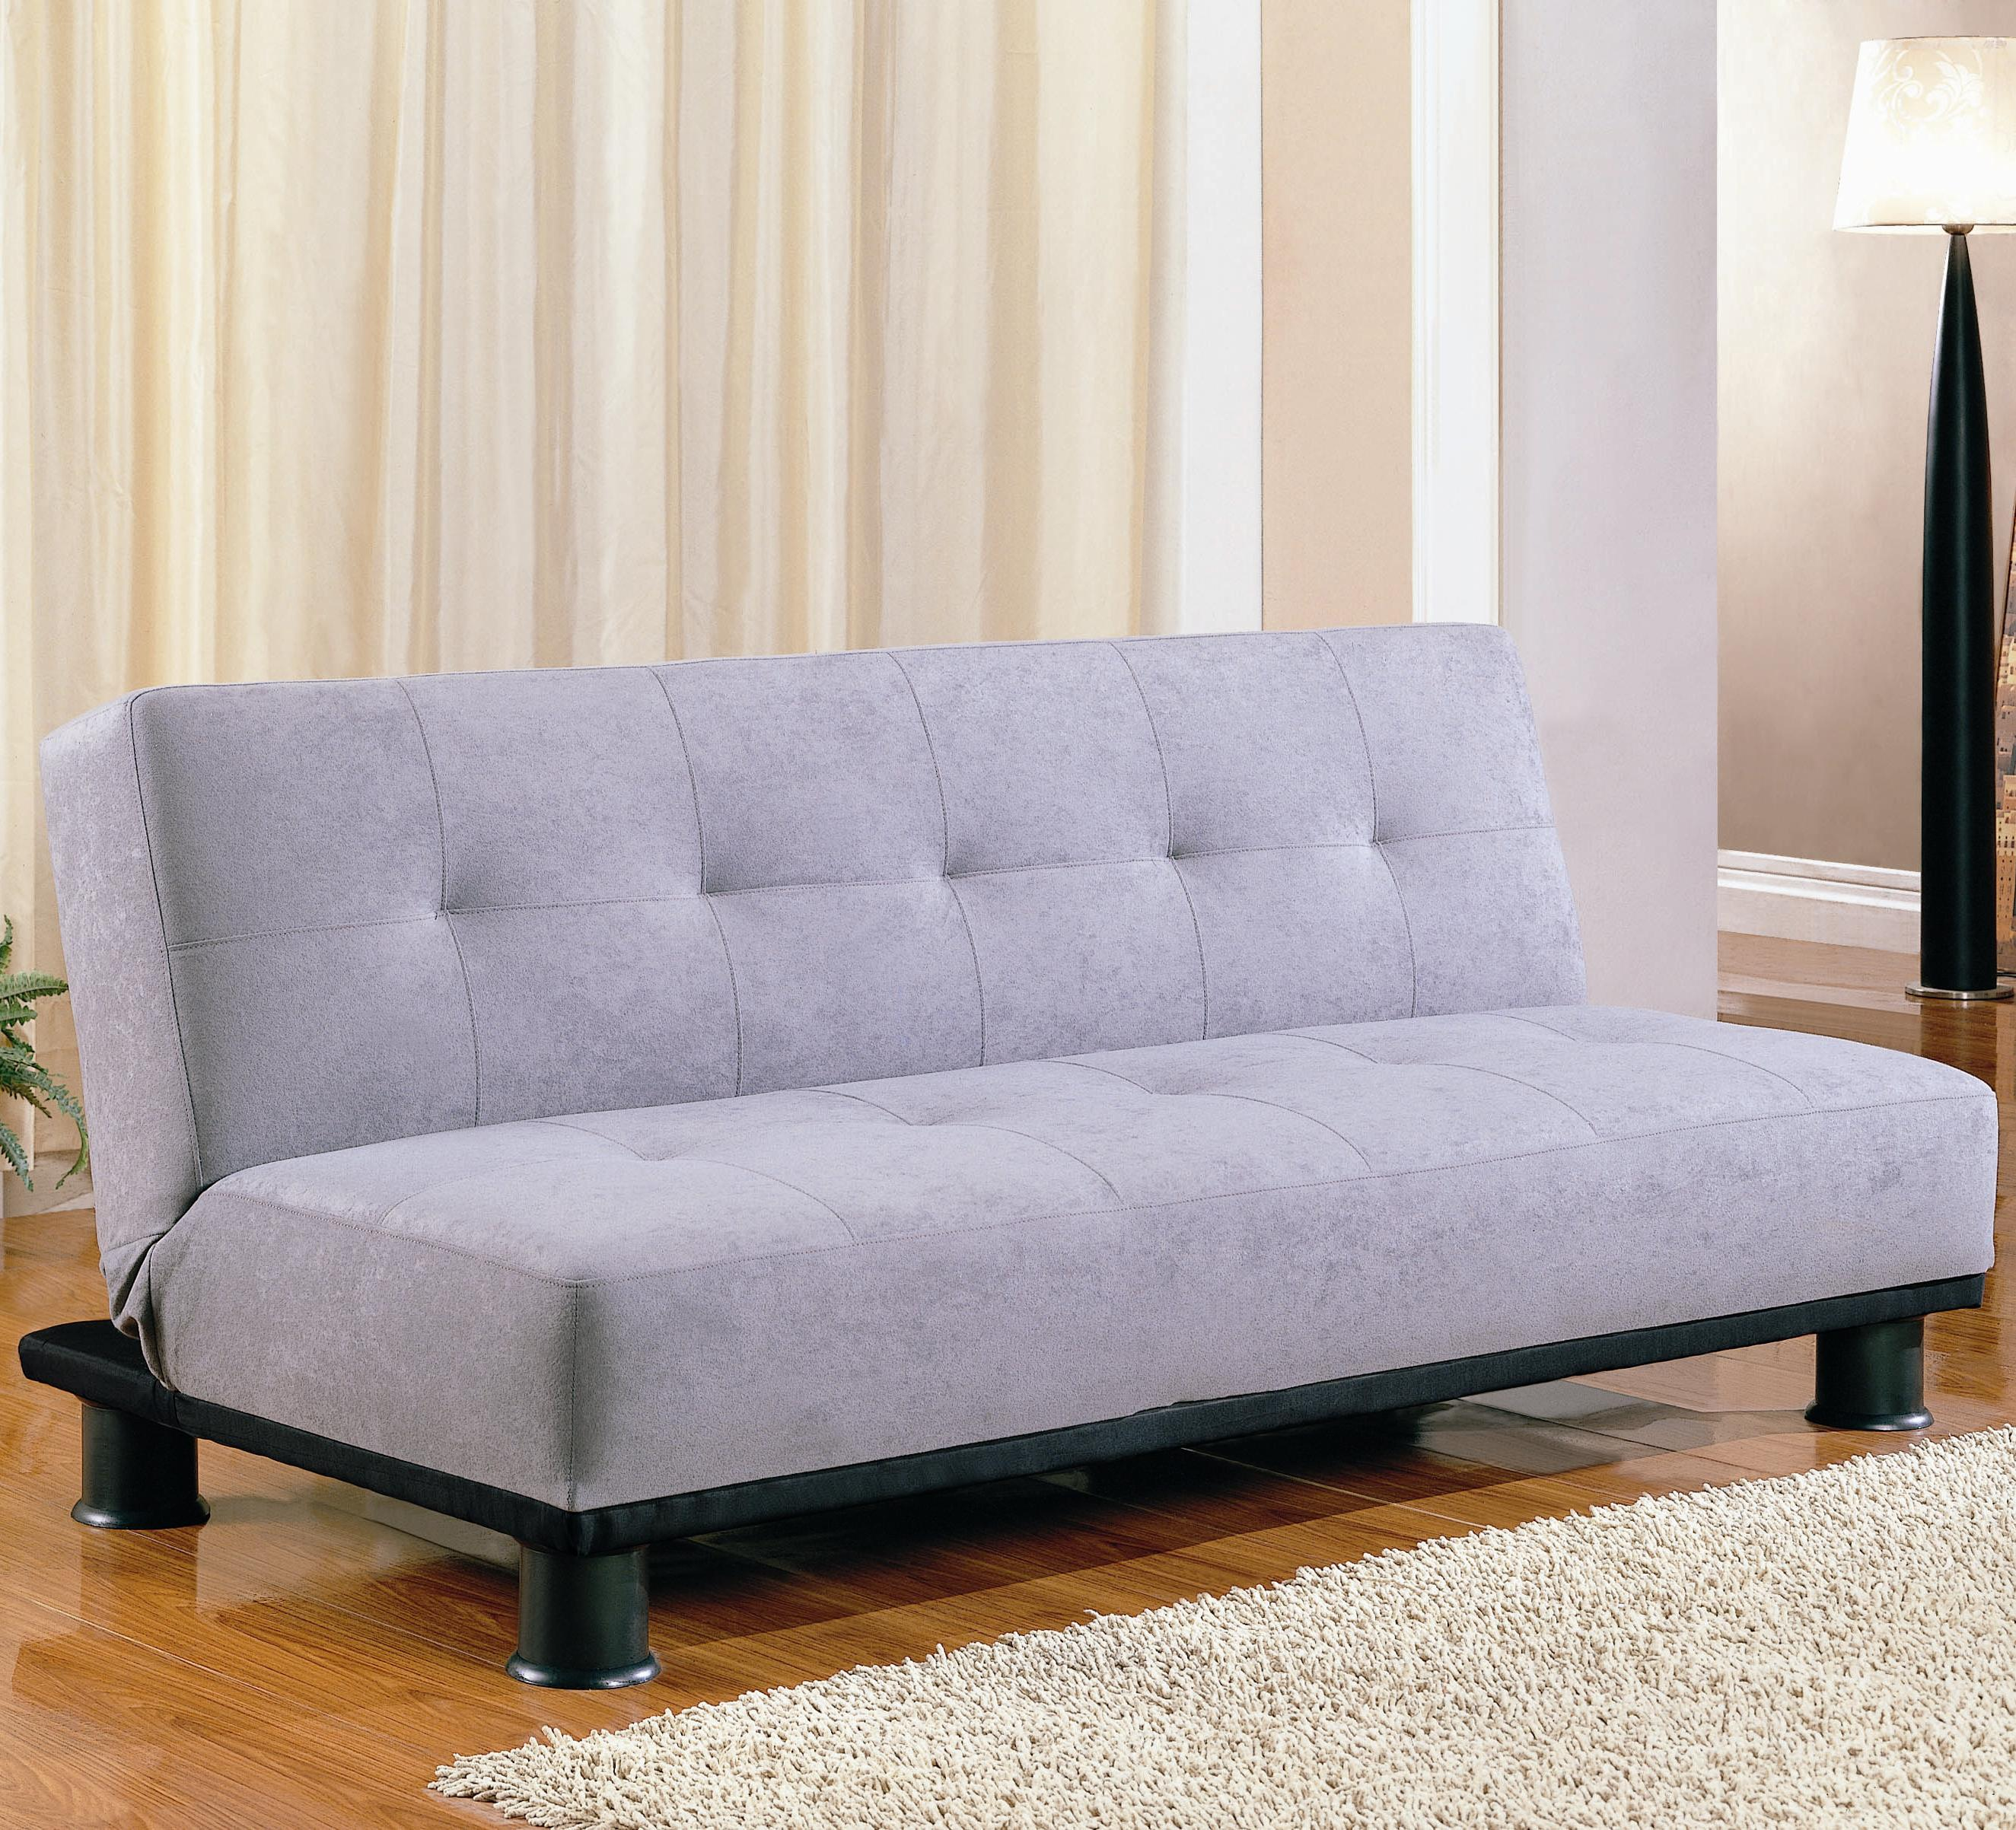 sofa bed beautiful queen city sleeper foam wood finish futon medium cotton of oak savannah